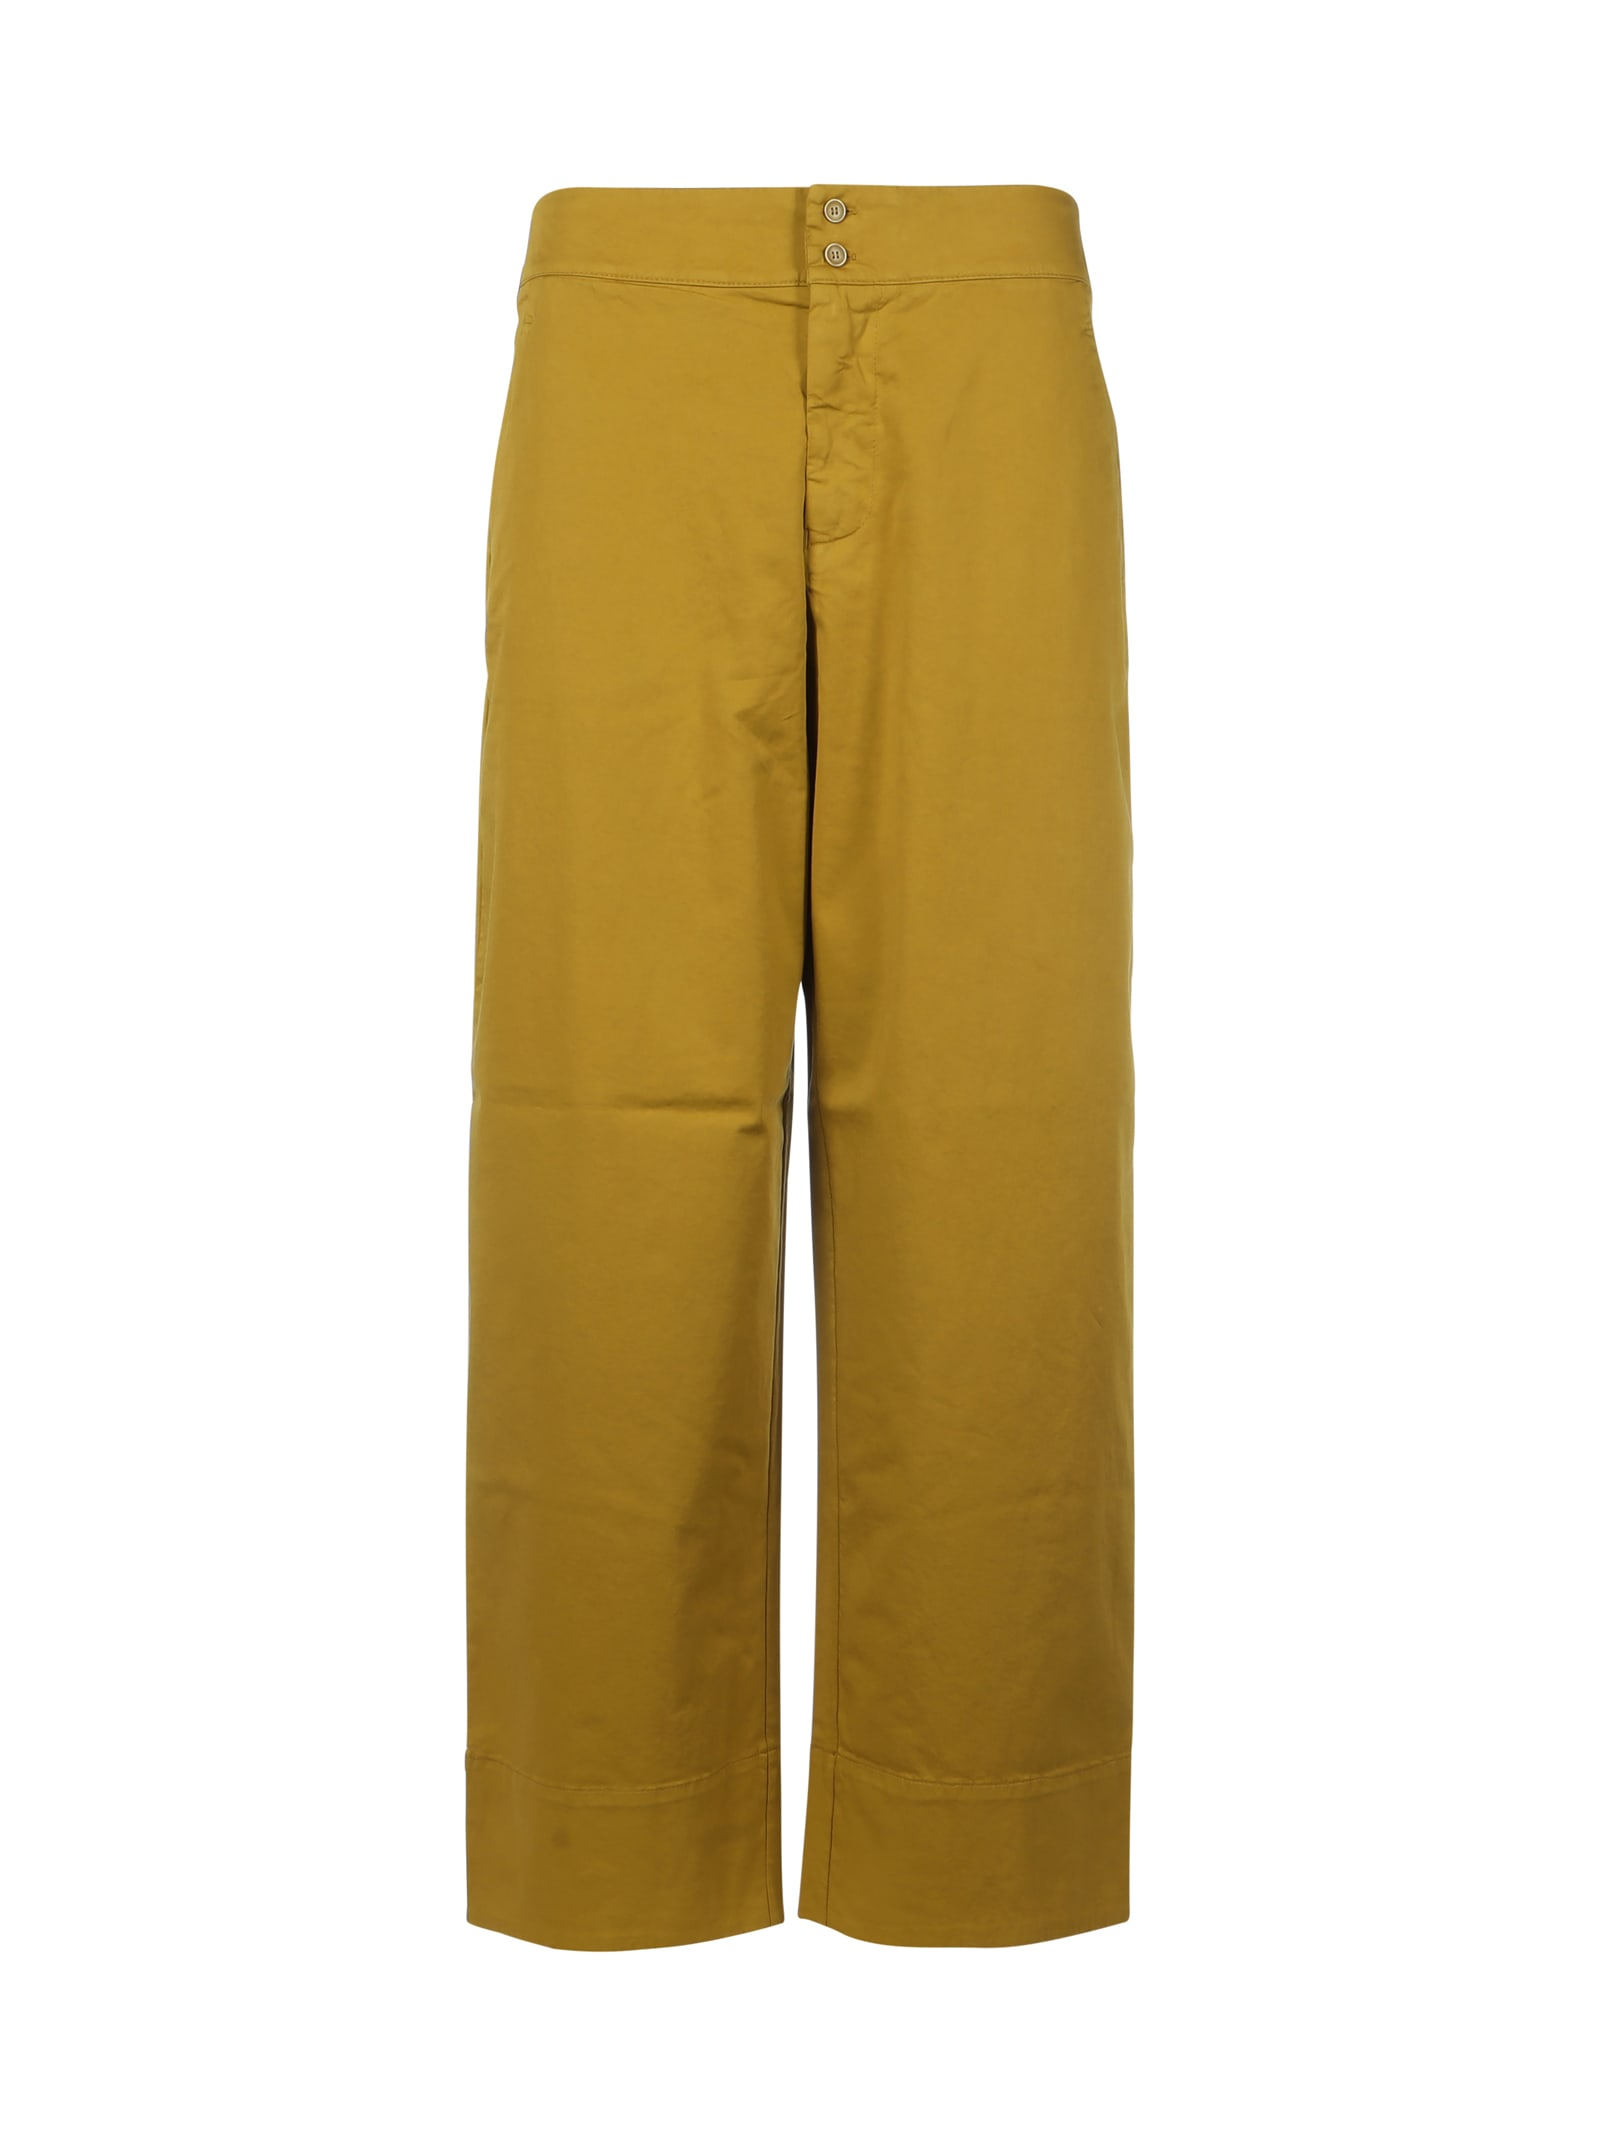 Transit LARGE PANTS